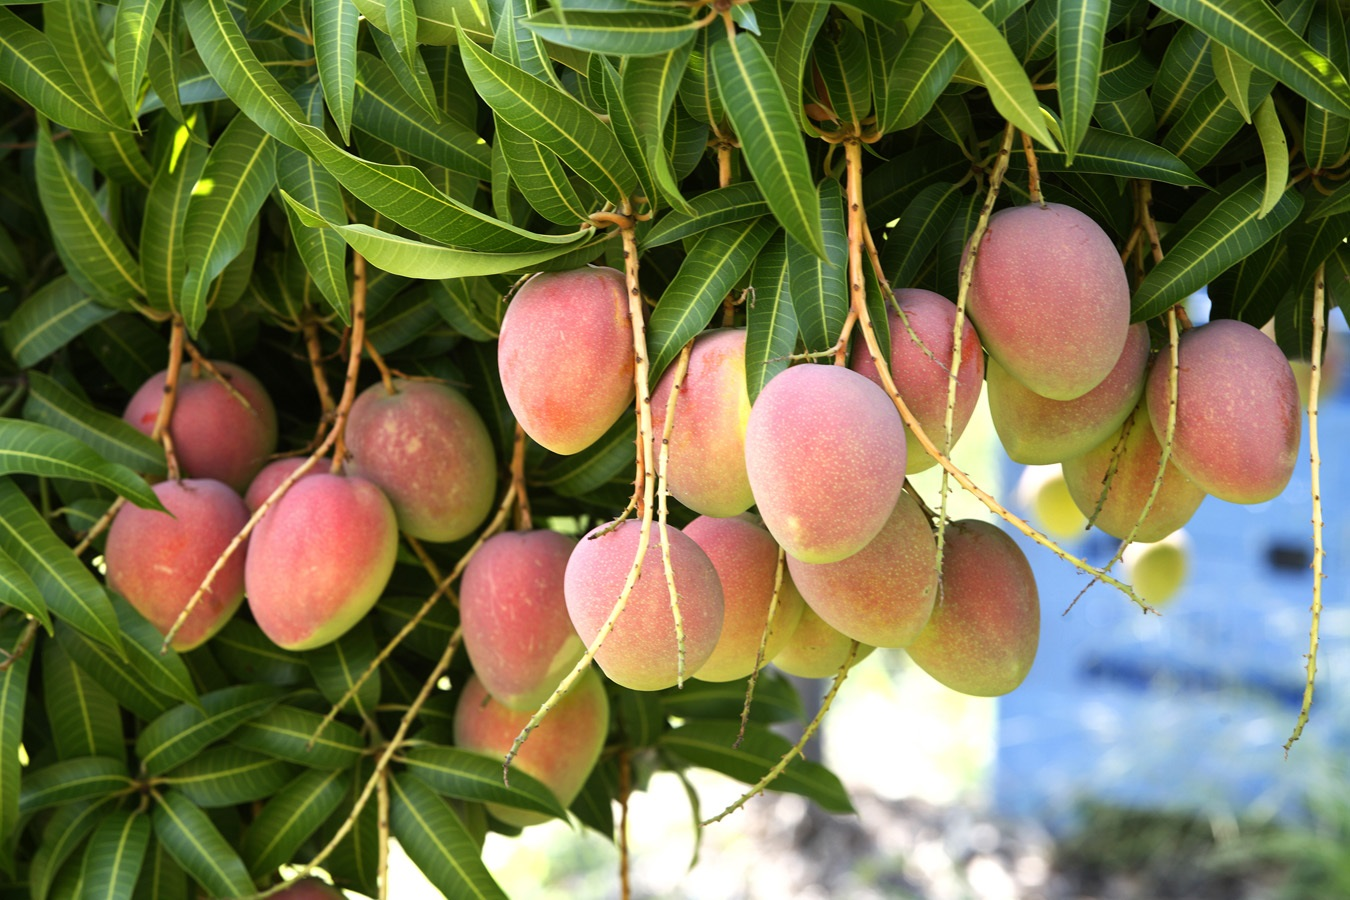 Domestication of Fruit Trees to Enhance Family Nutrition, Food Security, Environmental Conservation and Income Generation